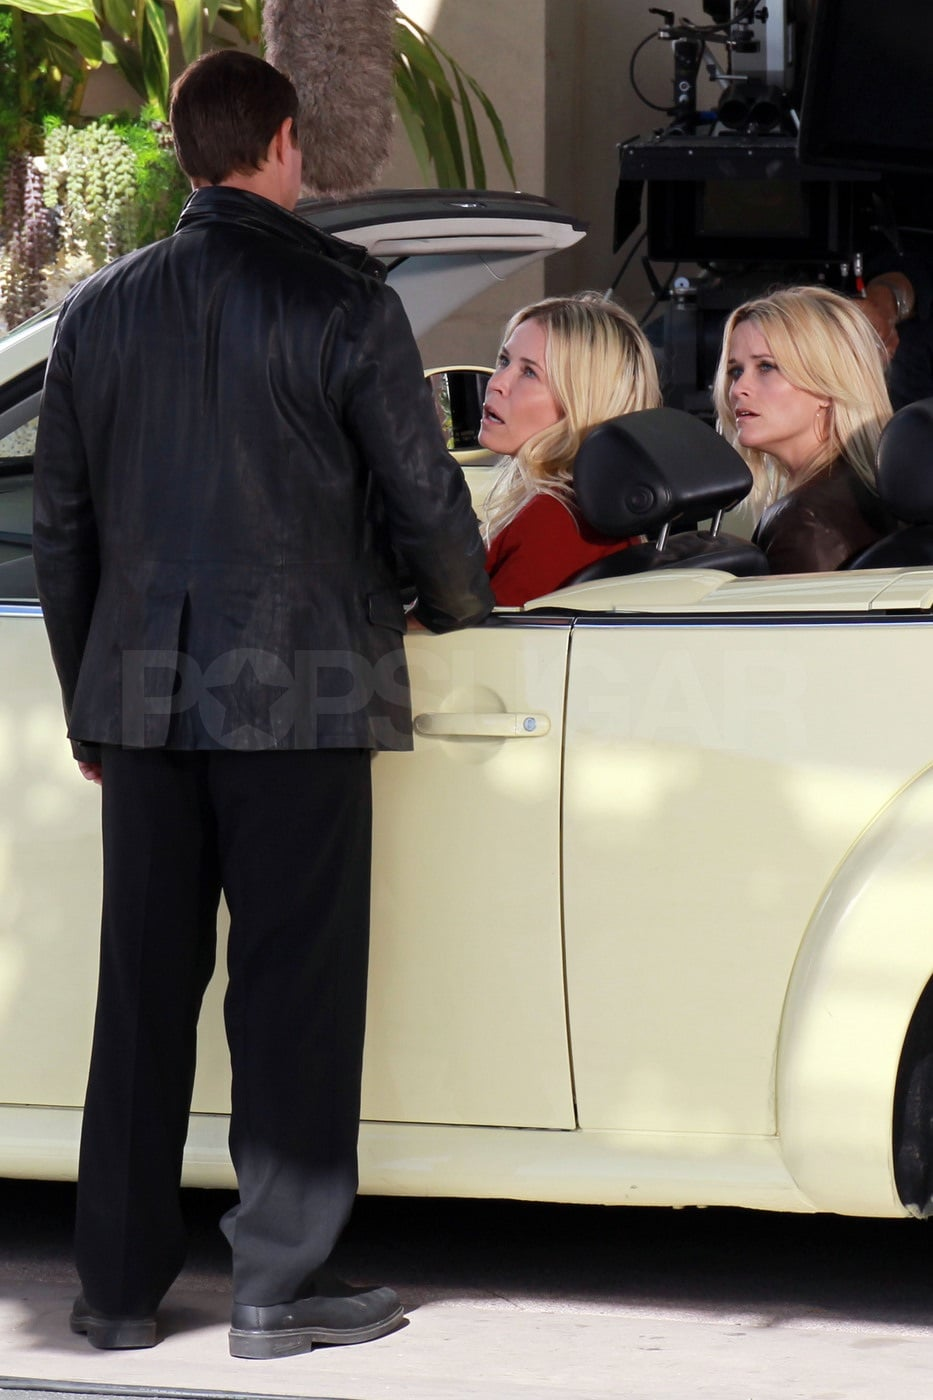 Chelsea Handler drove her friend Reese Witherspoon along.